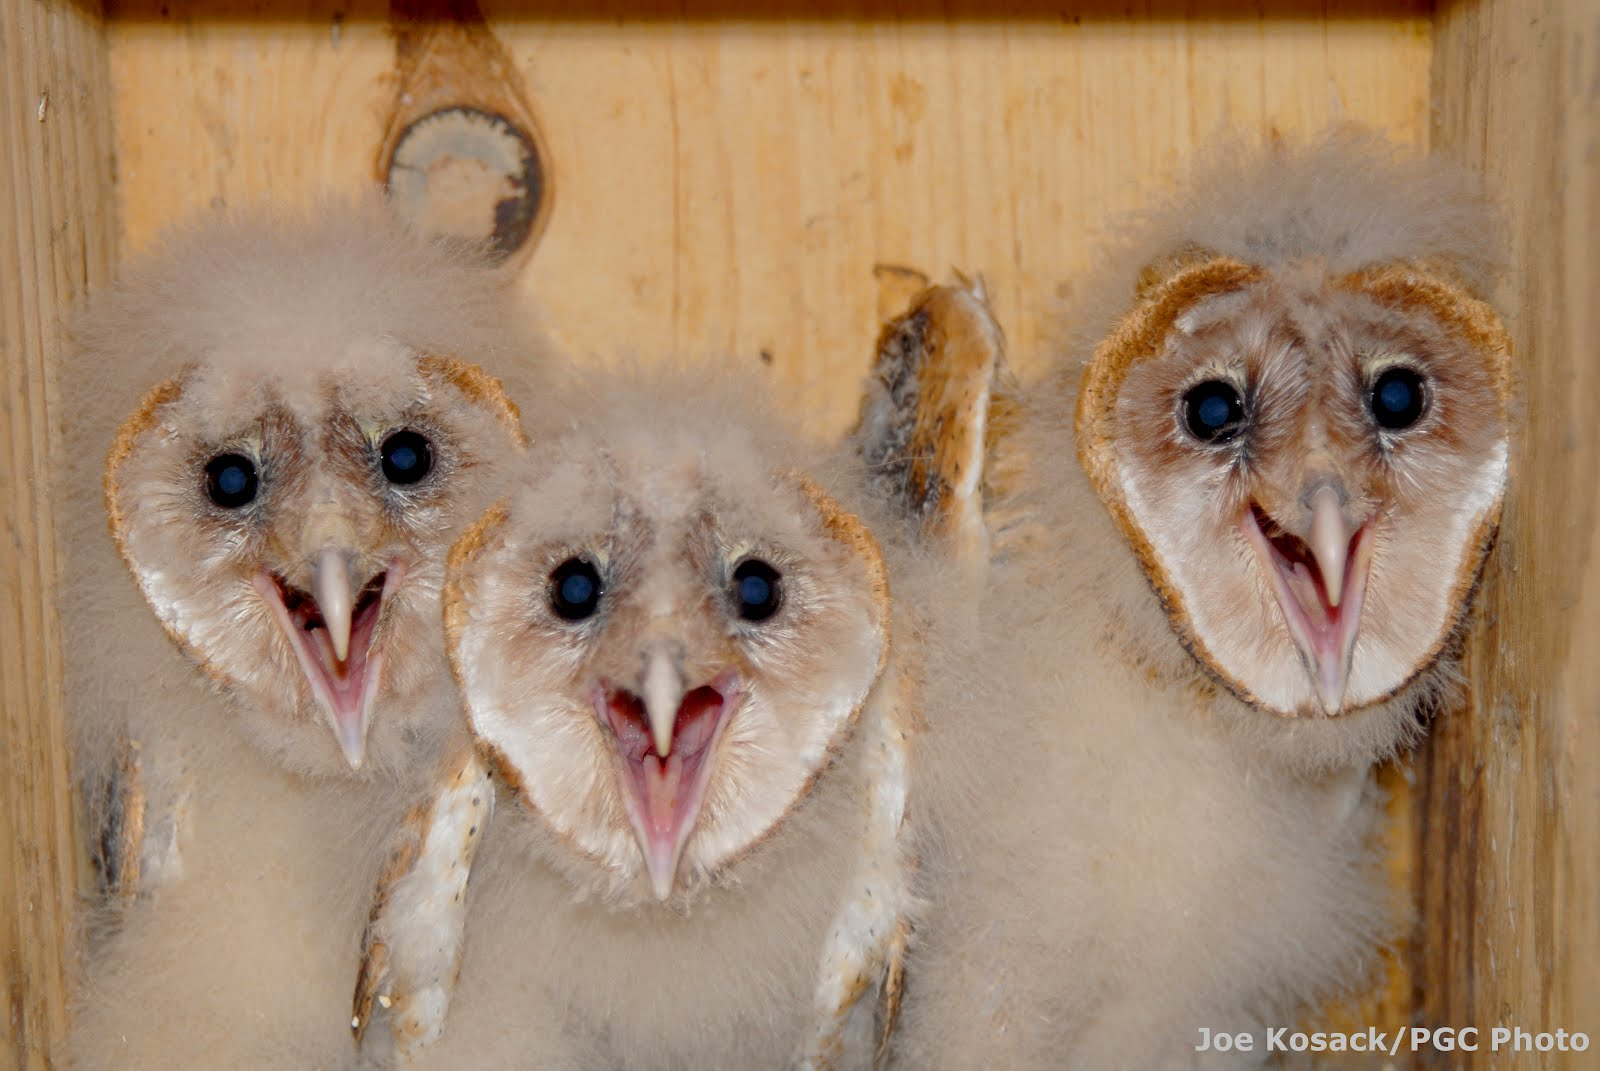 Game Commission Unveils Barn Owl Nest Web Cam